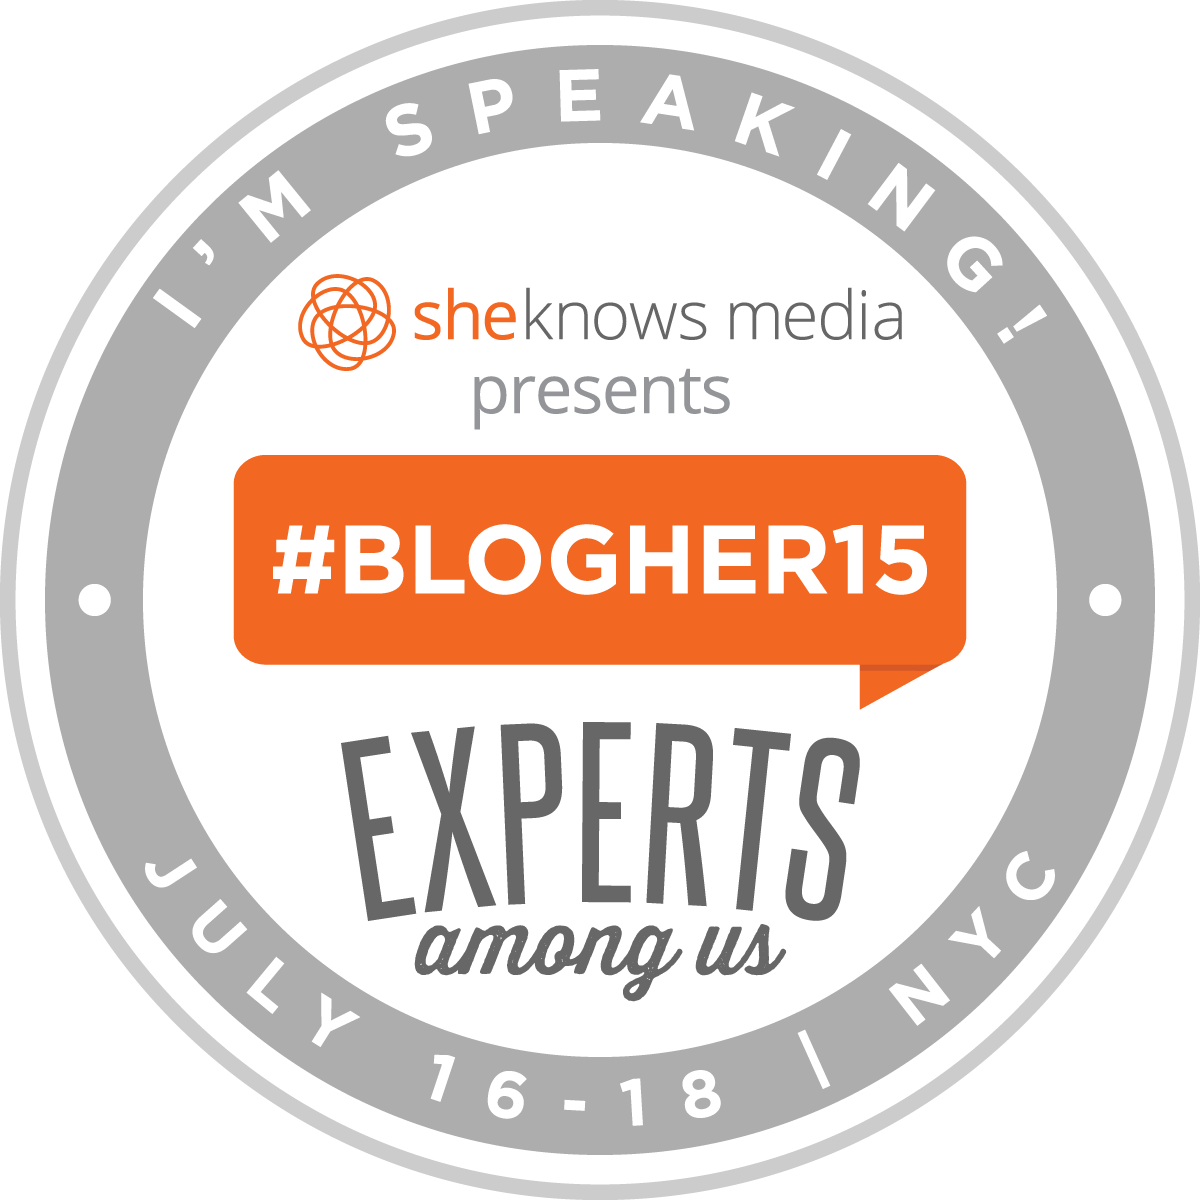 BlogHer 15 | Speaker | Storytelling Builds Bridges: I Want You To Know Me: Storytelling About Living with Mental Health Issues | July 2015